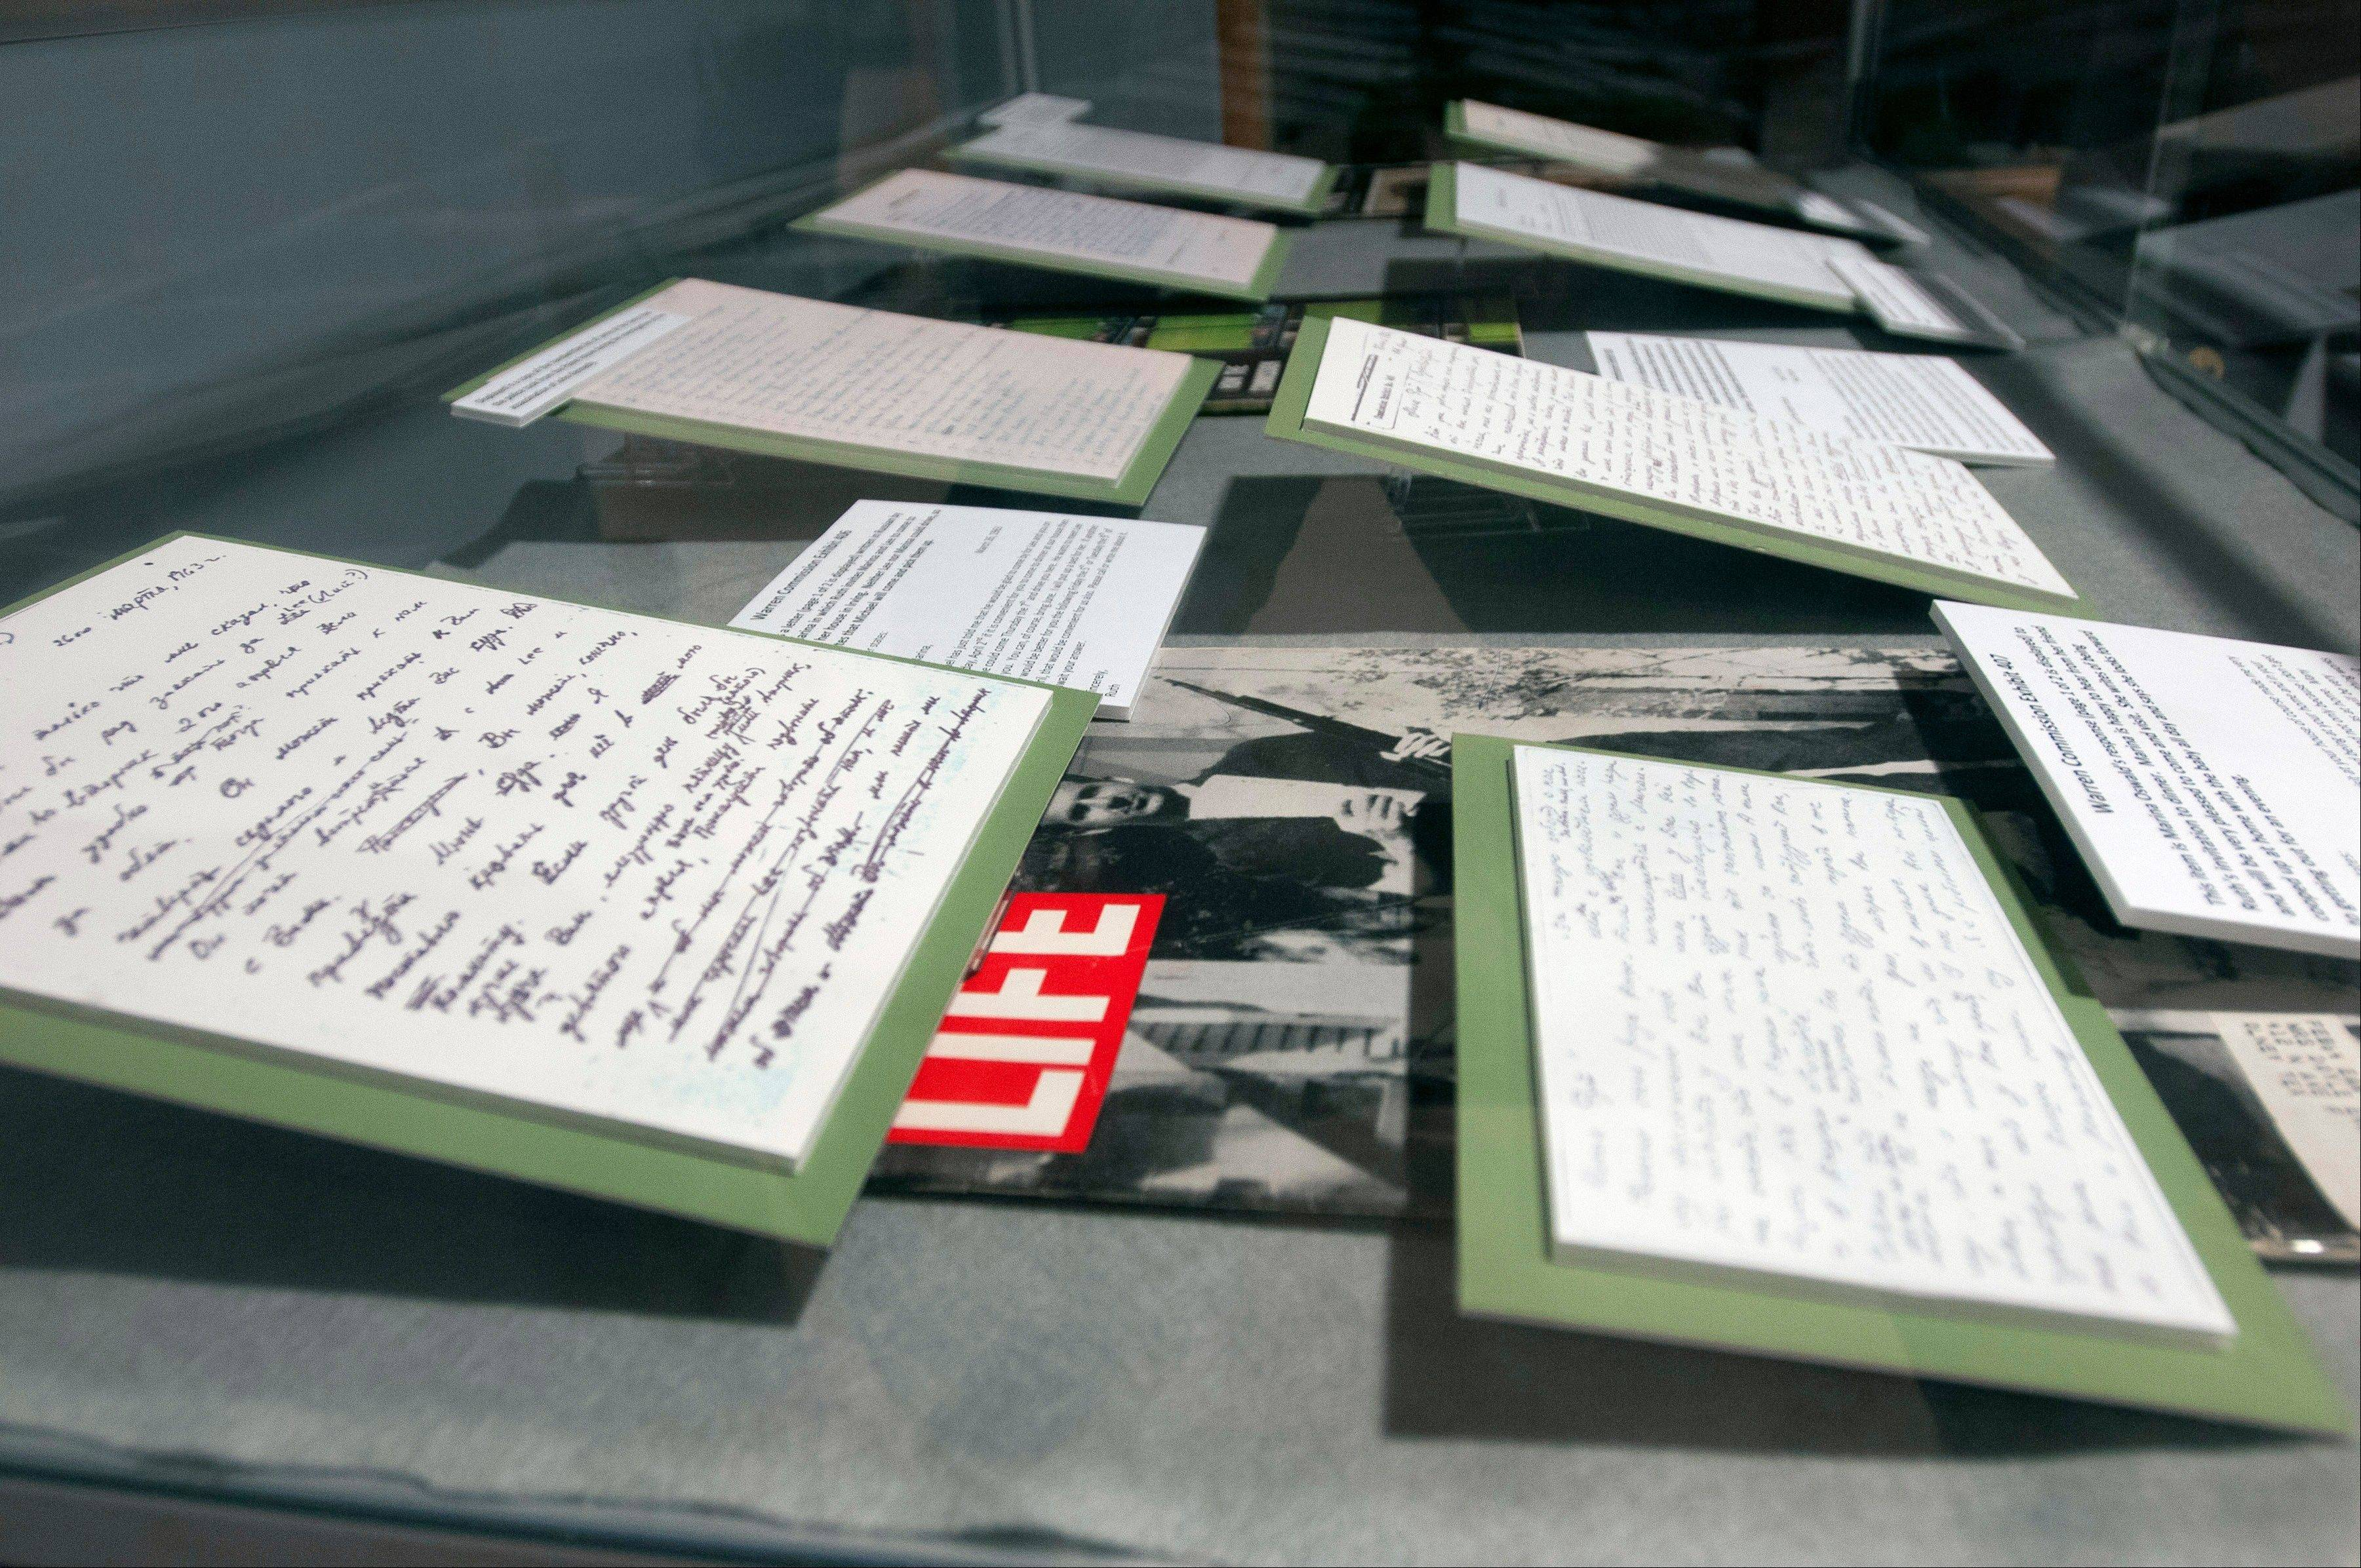 Correspondence between Marina Oswald and Ruth Paine as well as affidavits given to police at the time of President Kennedy's assassination are on display at the Ruth Paine House Museum Visitors' Center in Irving, Texas.